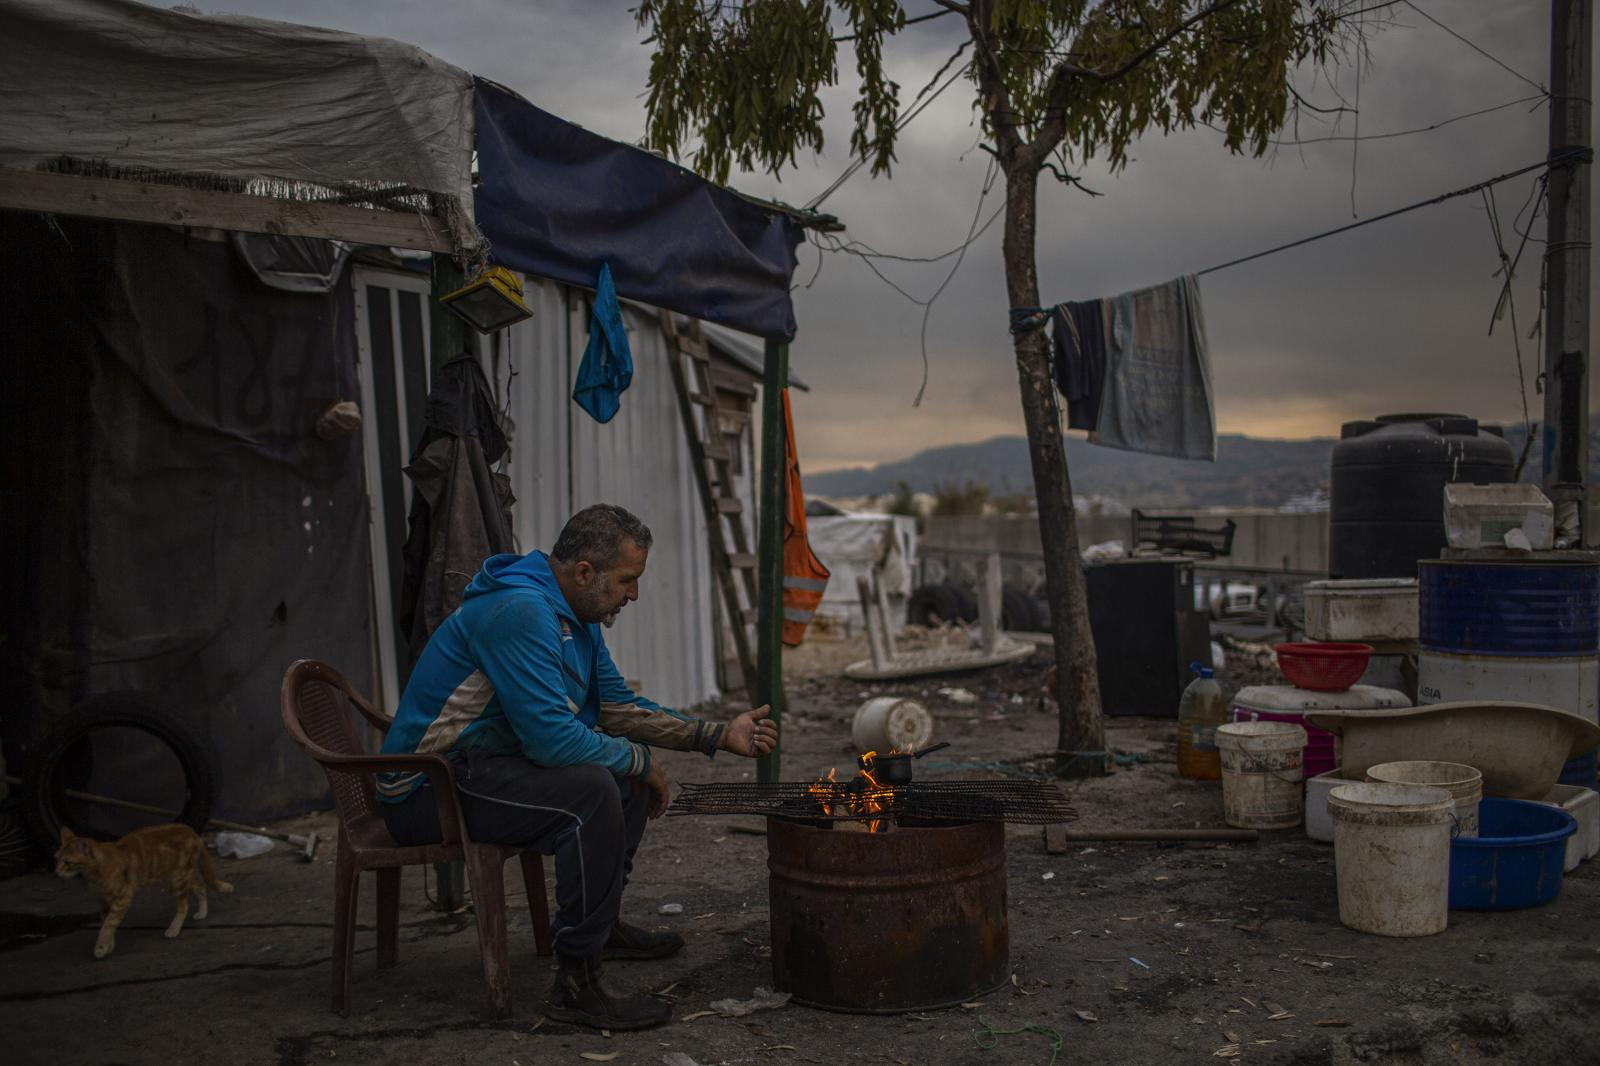 Beirut, Lebanon. November 23th, 2019. A fisherman warms himself early in the morning outside his home at Borj Hammoud port. The Borj Hammoud landfill is currently emanating particularly strong odors. According to air pollution experts, chronic exposure to these strong odors is linked to respiratory diseases, allergies, and the spread of bacteria. Further, experts state that leachate from the Borj Hammoud landfill is being dumped into the sea, polluting the water and making the sea in areas surrounding the landfill dangerous for swimming. Diego Ibarra Sánchez for THE NEW YORK TIMES